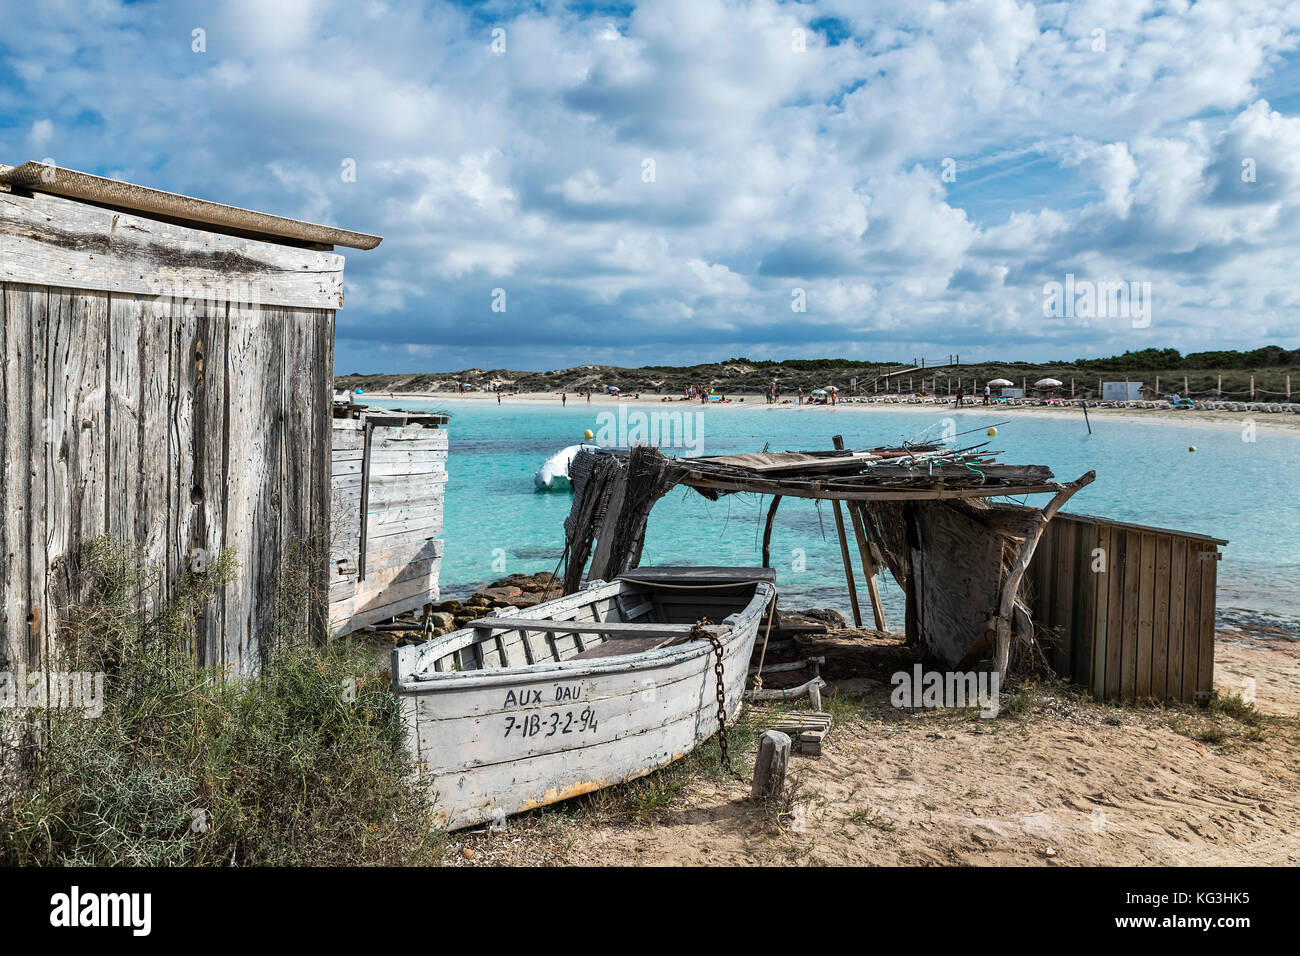 Boat and boat shed, Playa des ses Illetes, Formentera, Balearic Islands, Spain. - Stock Image